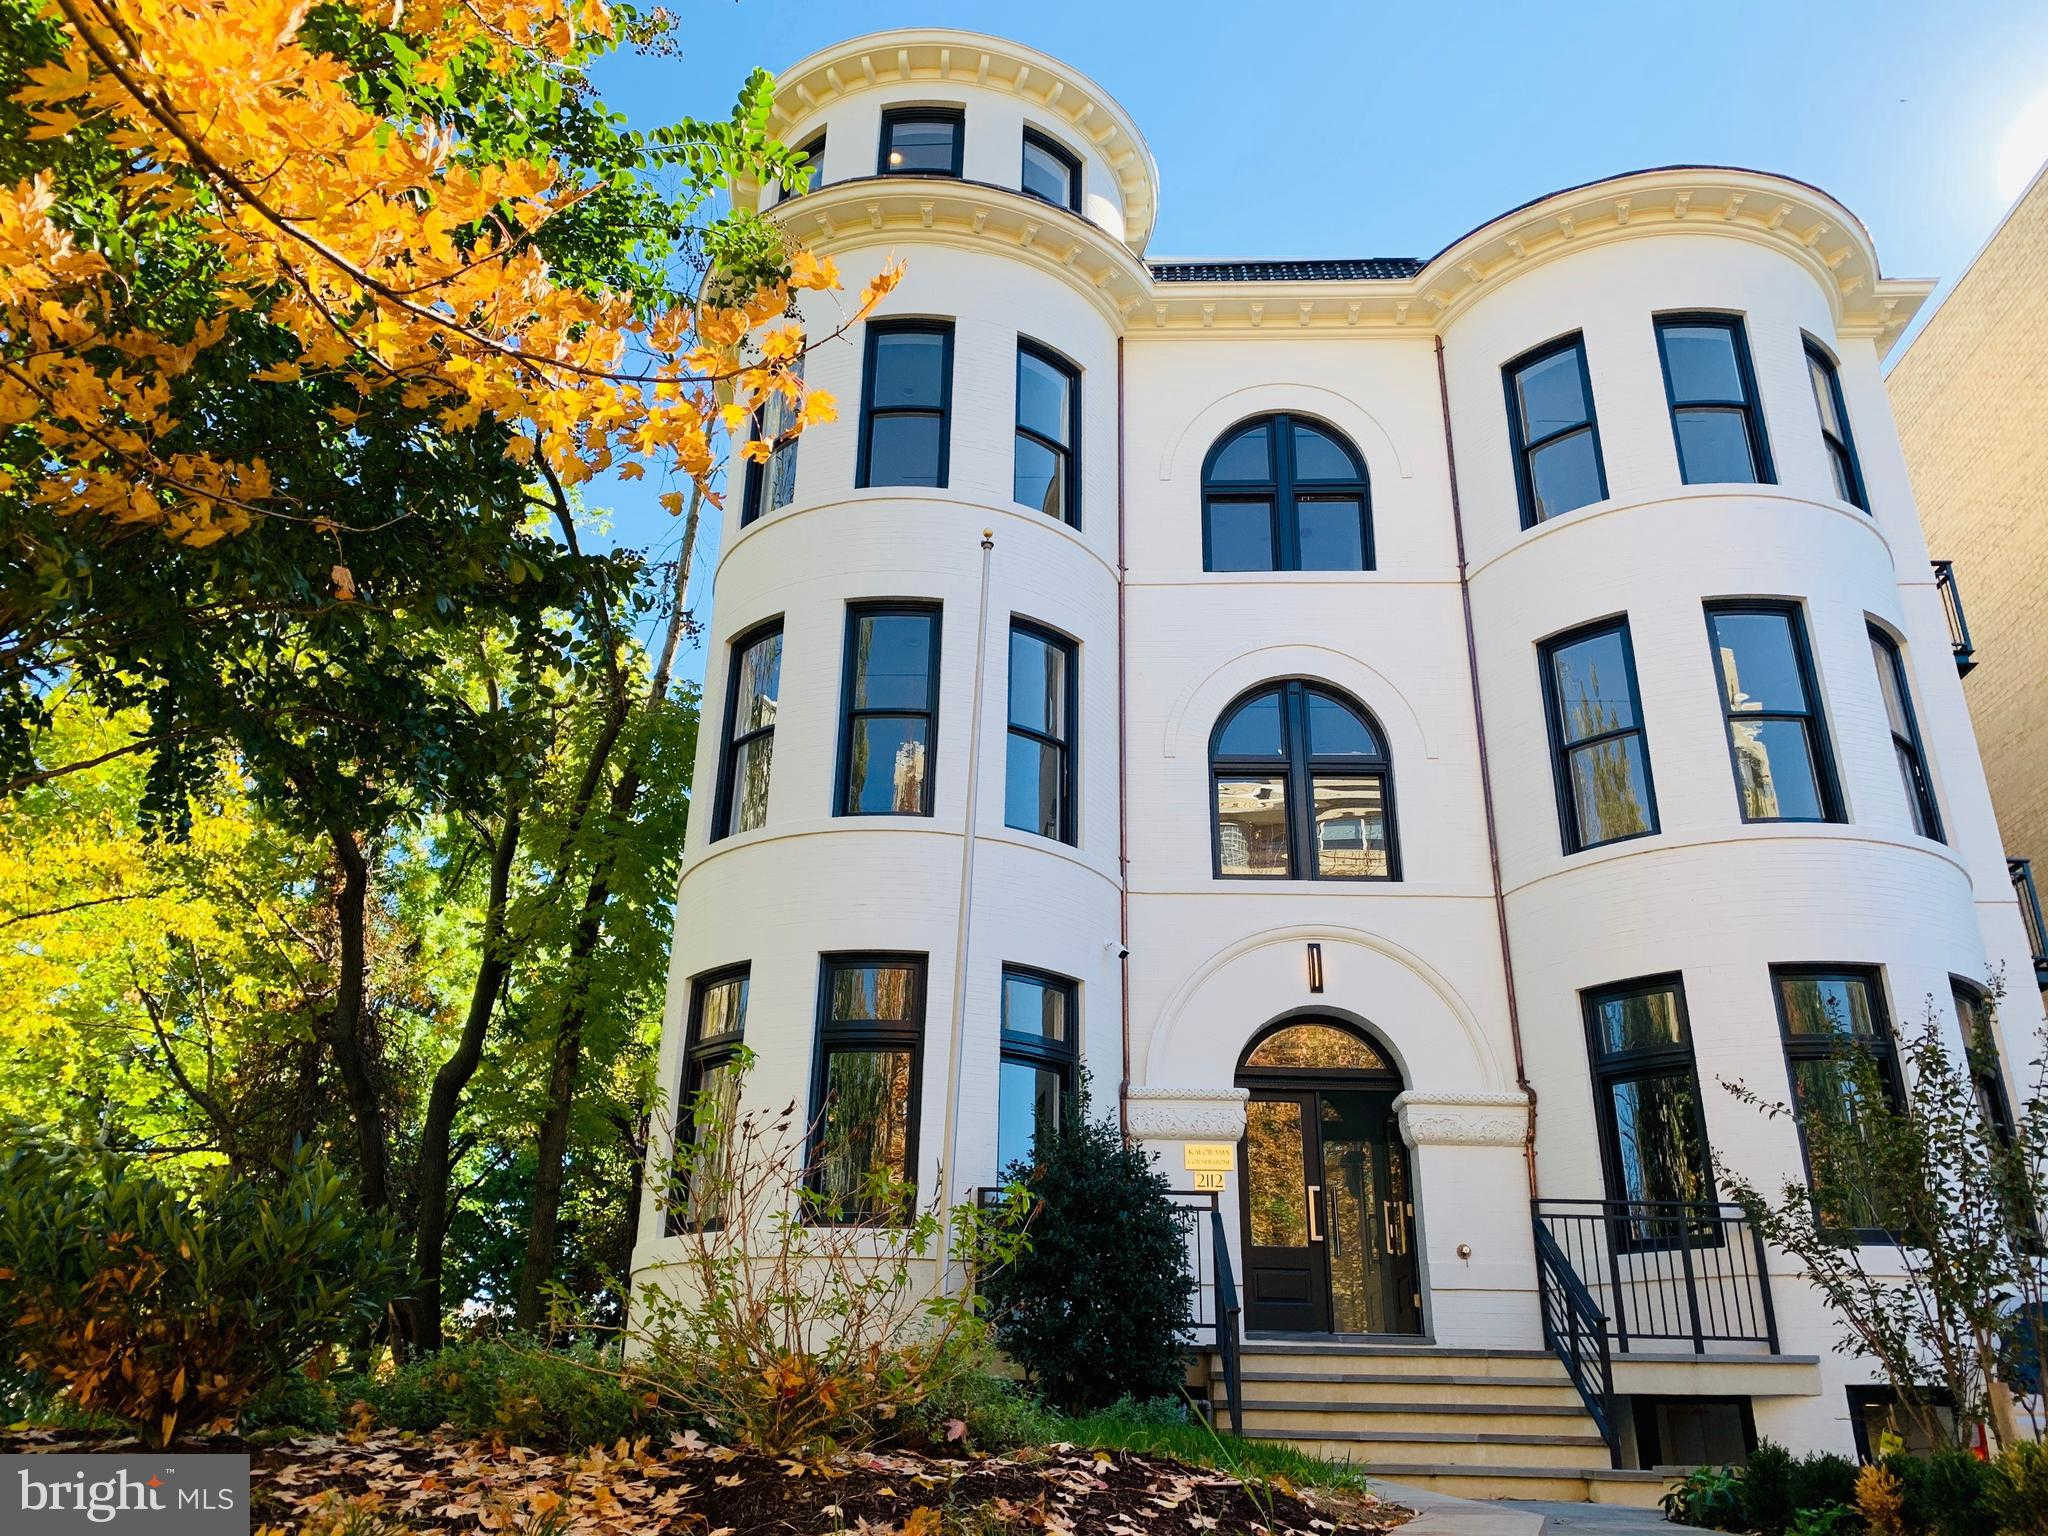 Another Property Rented - 2112 Wyoming Avenue NW #1, Washington, DC 20008